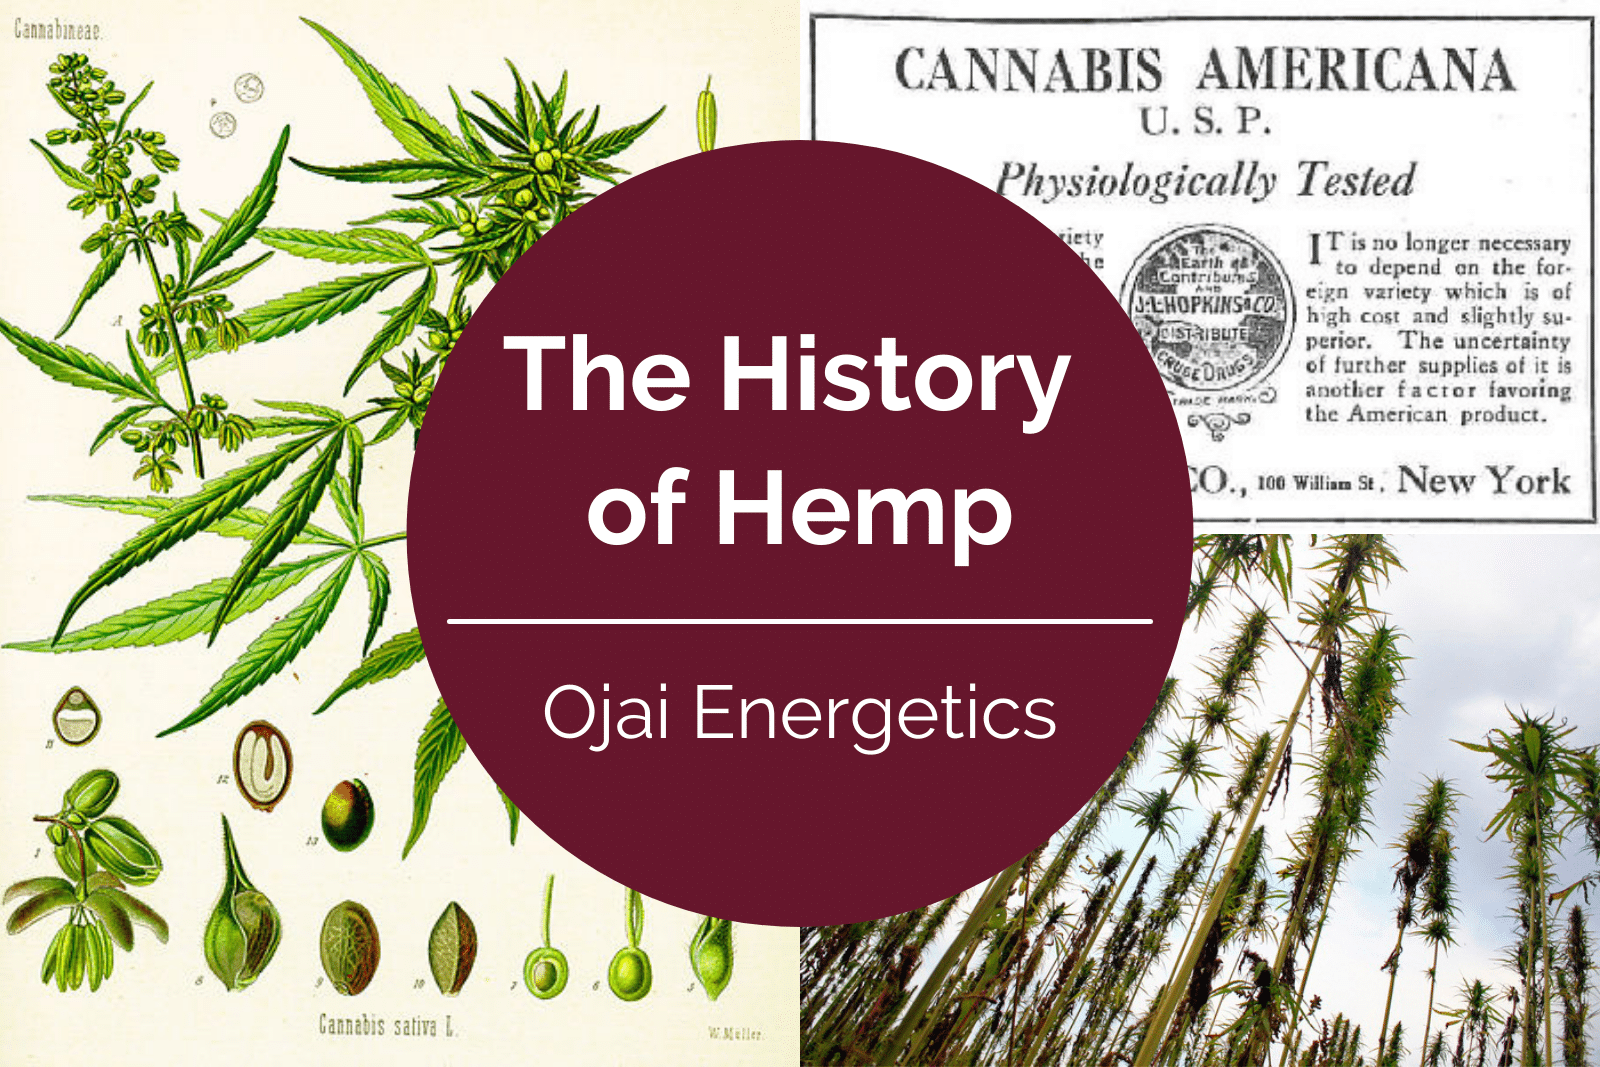 The History of Hemp: Where and When was Hemp First Used?